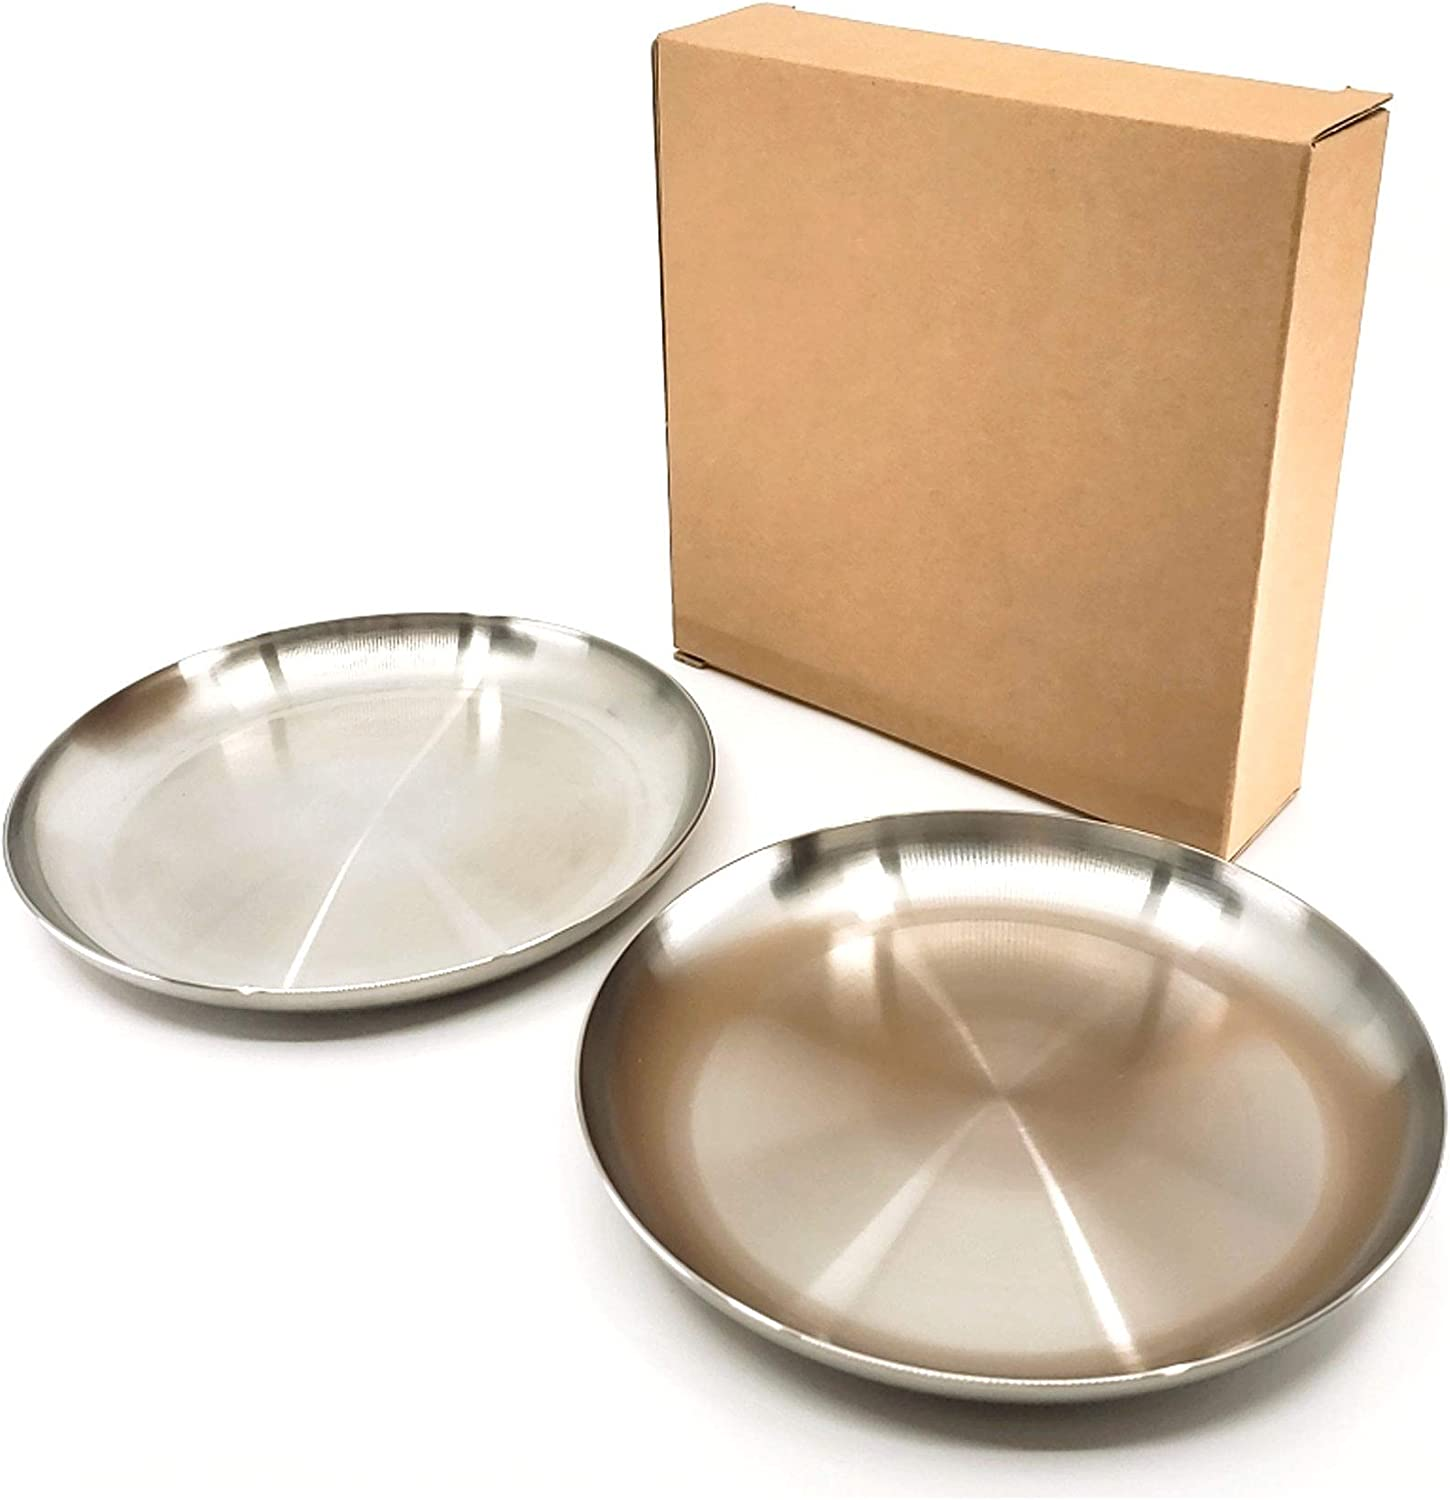 Set of 2, The Elixir Eco Green Premium STS 304 Stainless Steel Dinner Plates Heavy Duty Kitchenware Round 6 Inch Plate, Dishwasher Safe BPA Free